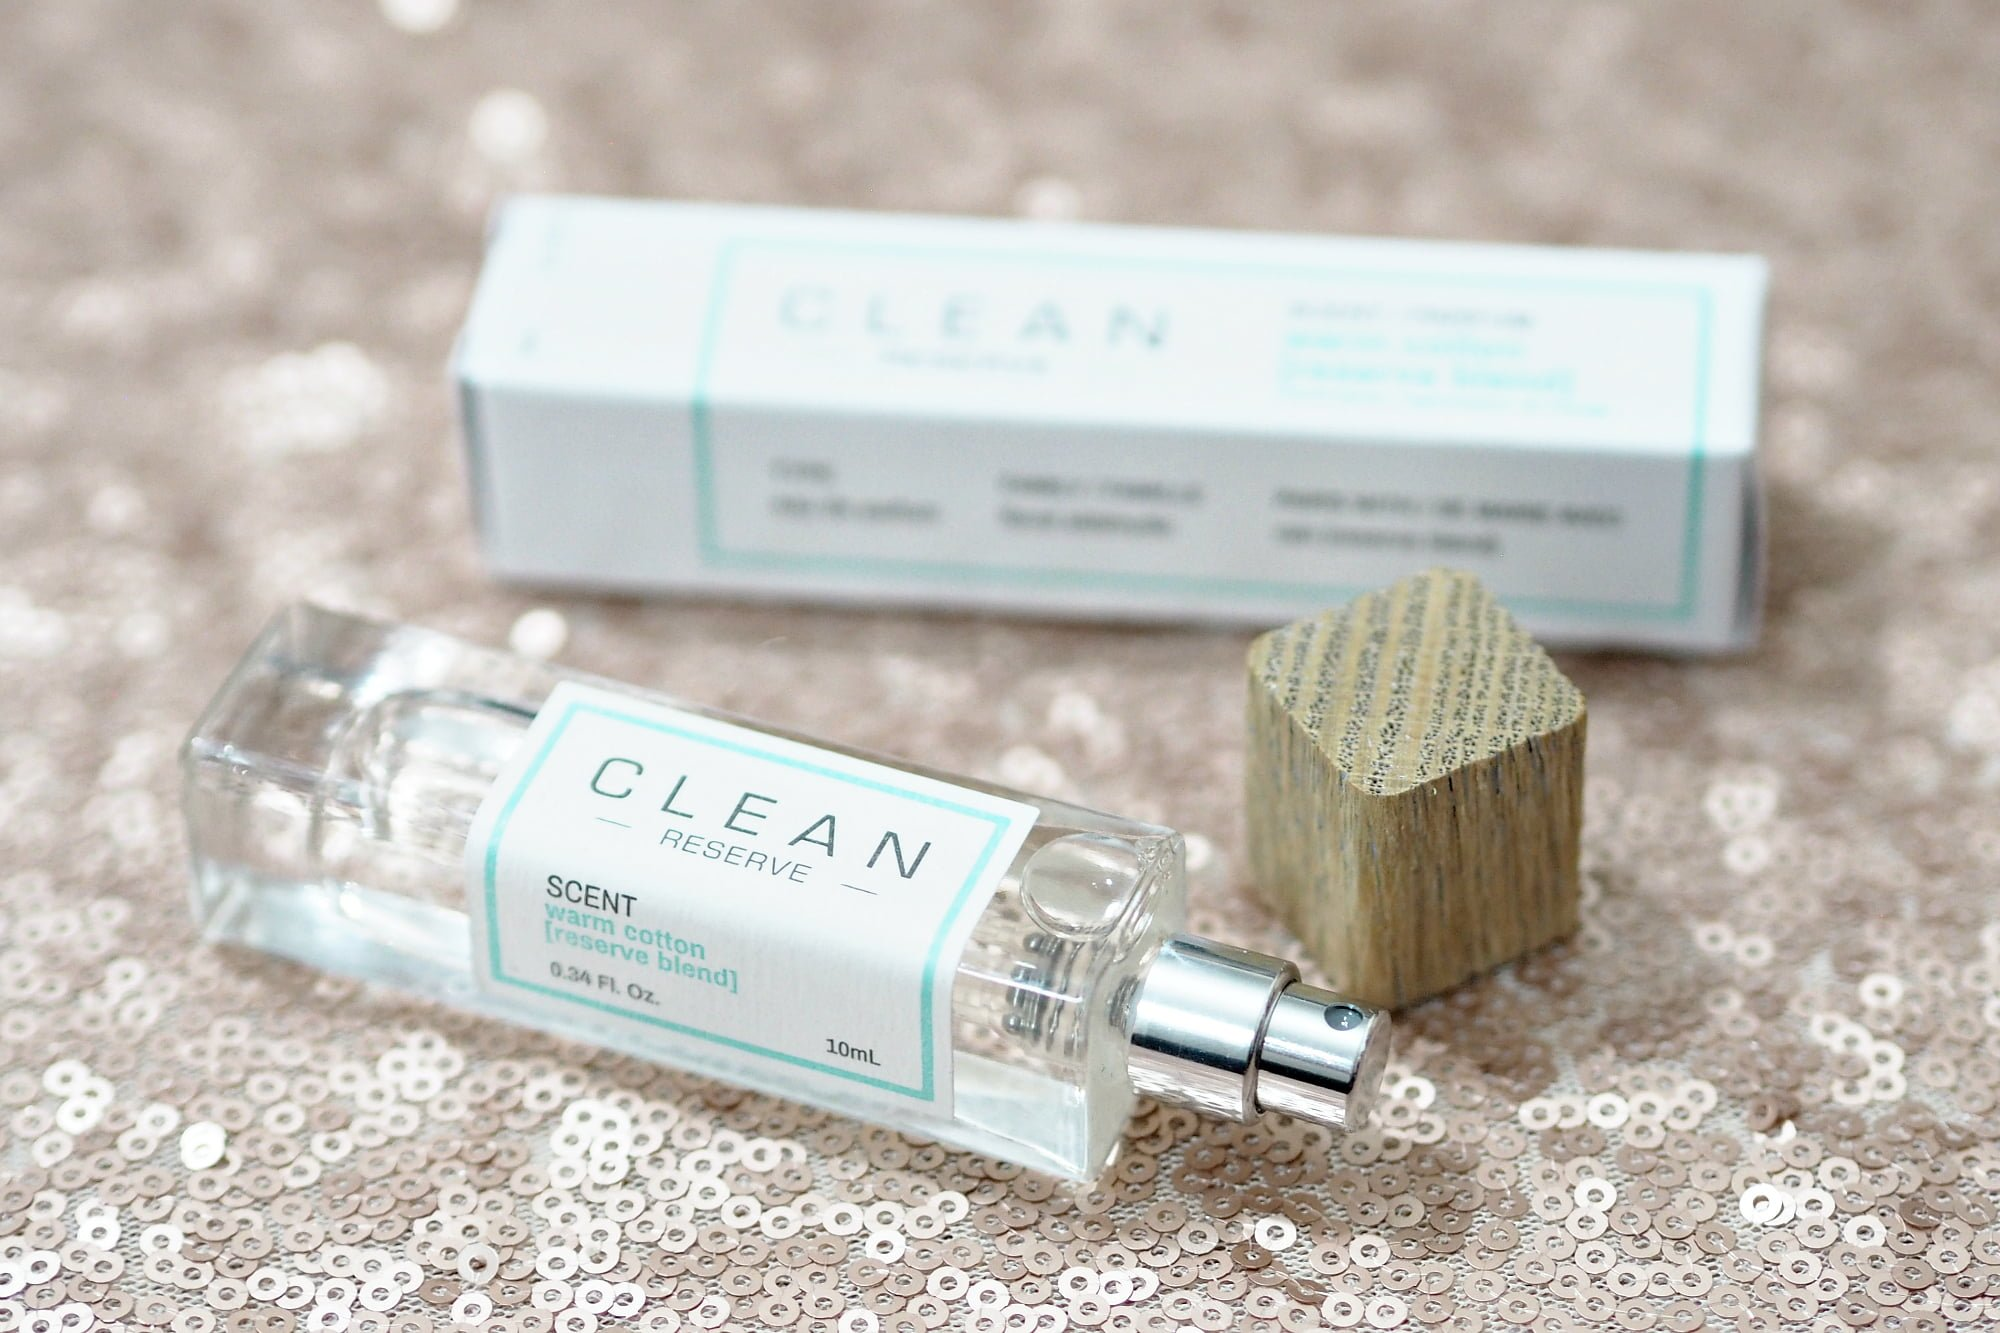 Clean Reserve Warm Cotton Eau de Parfum